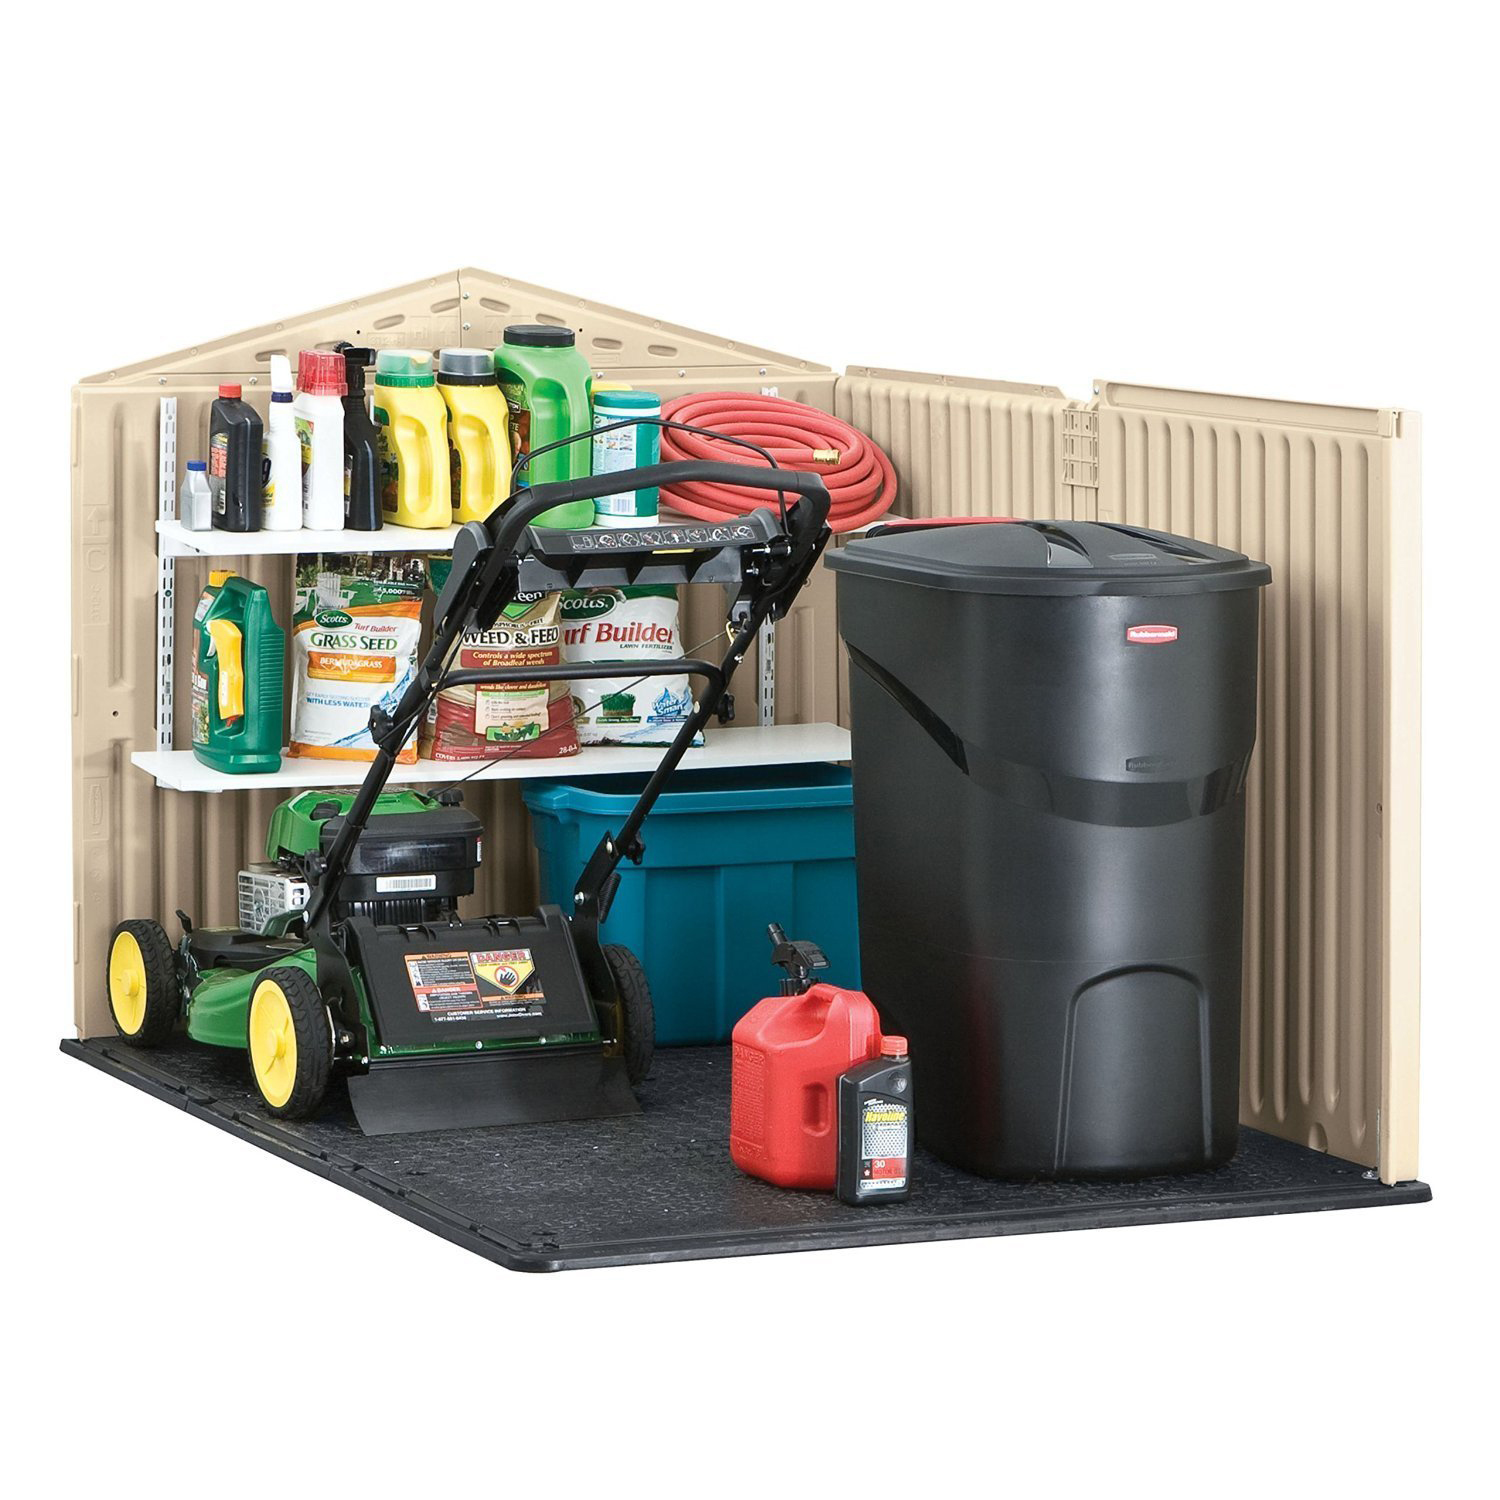 Rubbermaid 96 Cubic Feet Low Profile Slide Lid Outdoor Storage Shed